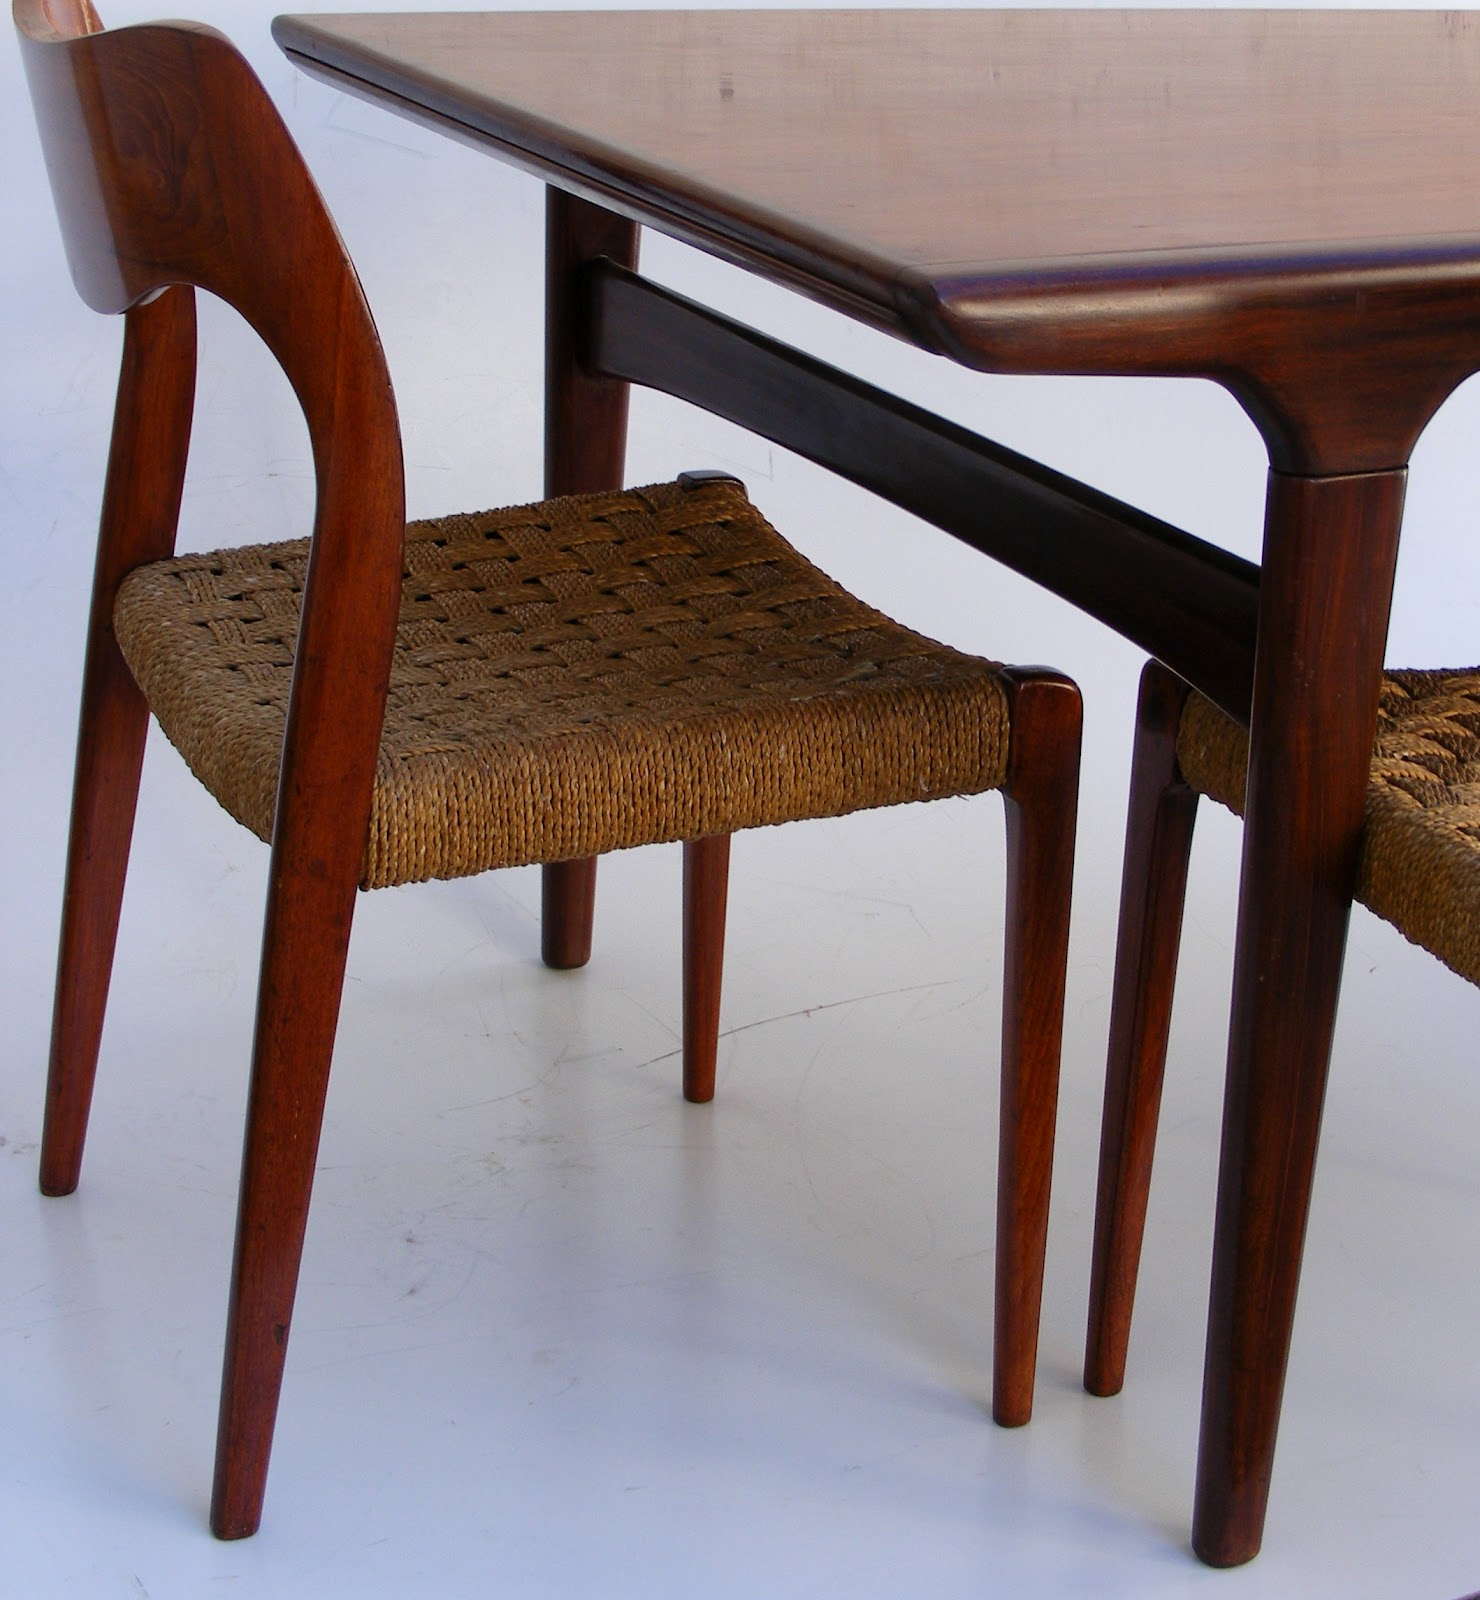 Parker Knoll Dining Chairs Second Hand Wooden Church With Kneelers Vamp Furniture An Invitation From